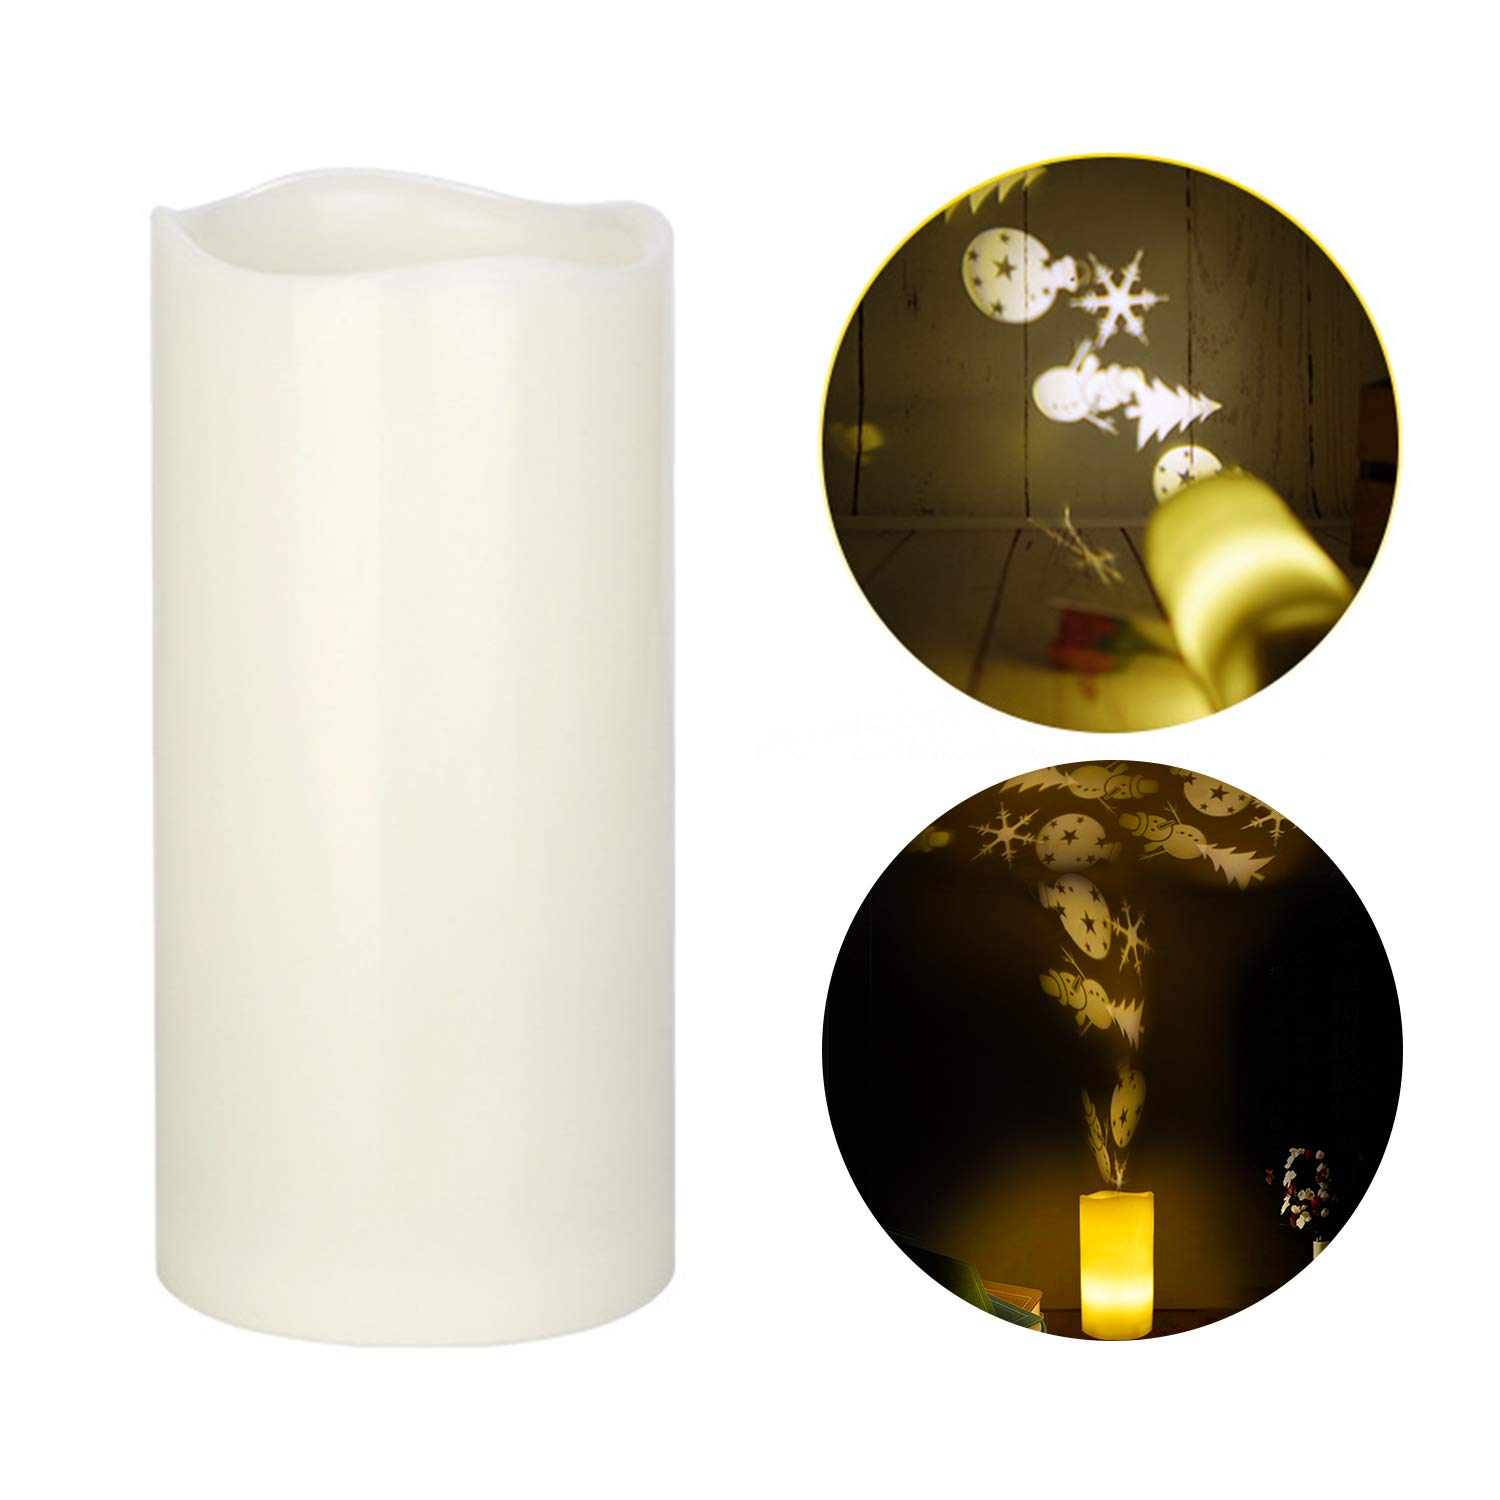 LED Candle, Flameless Candle with Projection Pattern Battery Operated Real Wax Candle for Party, Holiday, Christmas, Wedding Hengjiuyuan Direct